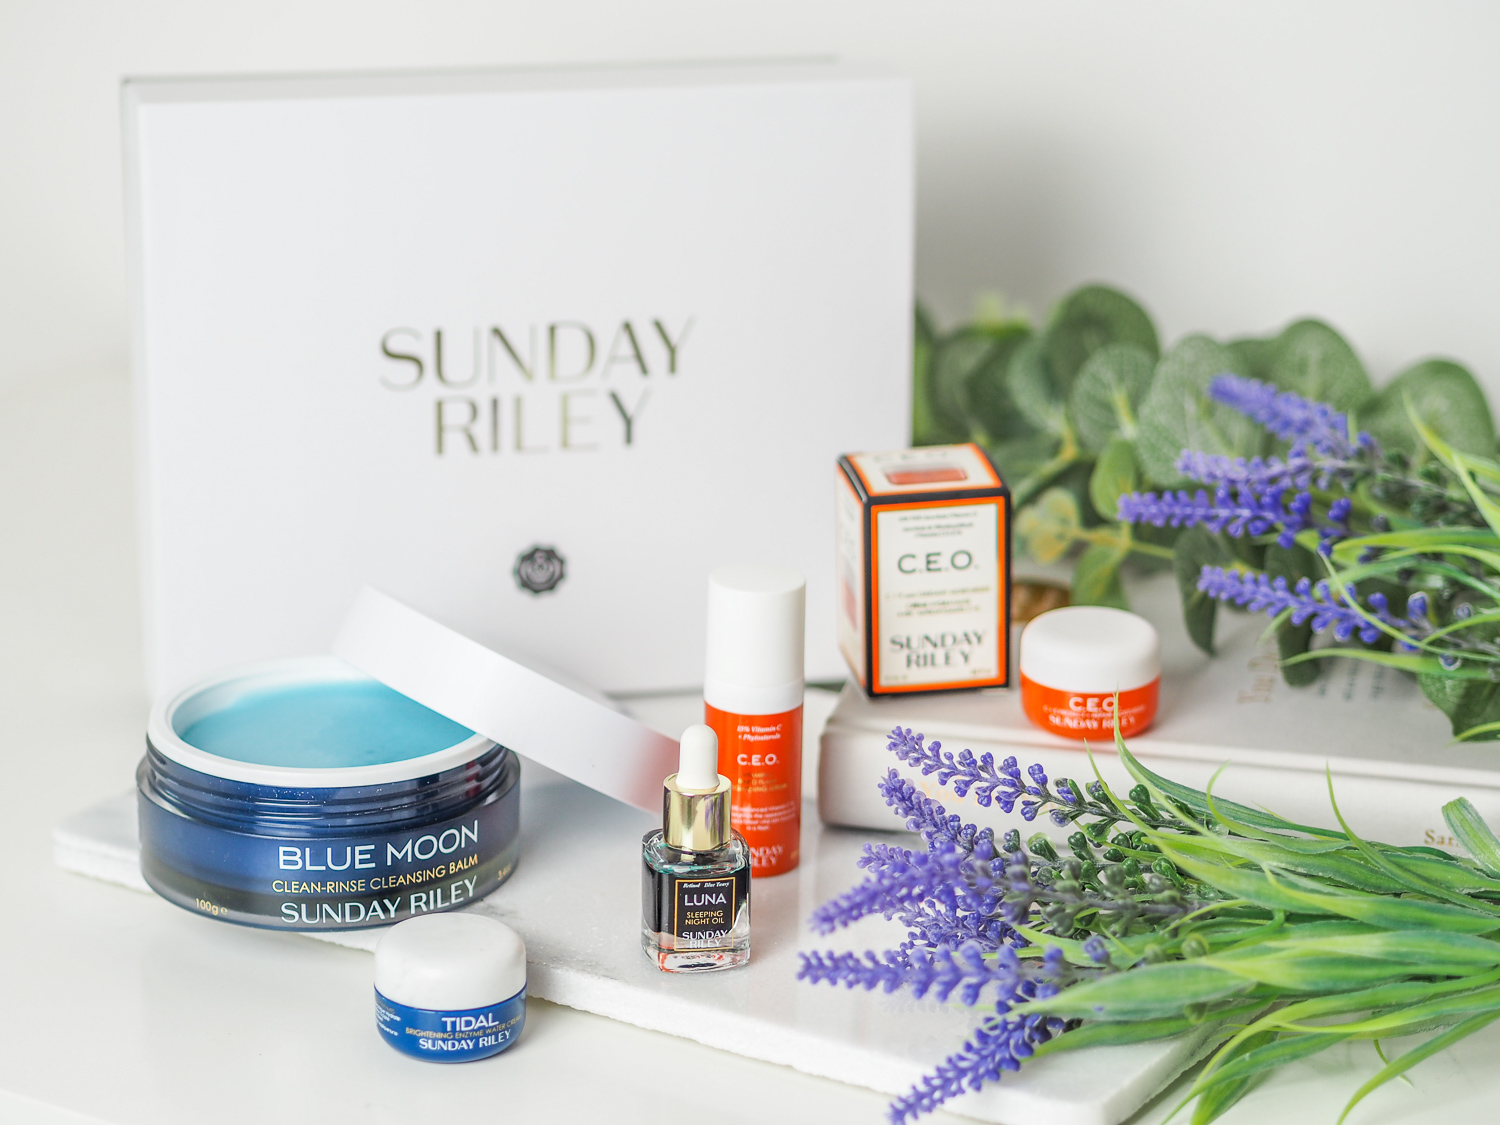 The Sunday Riley Glossybox | LUCY-COLE